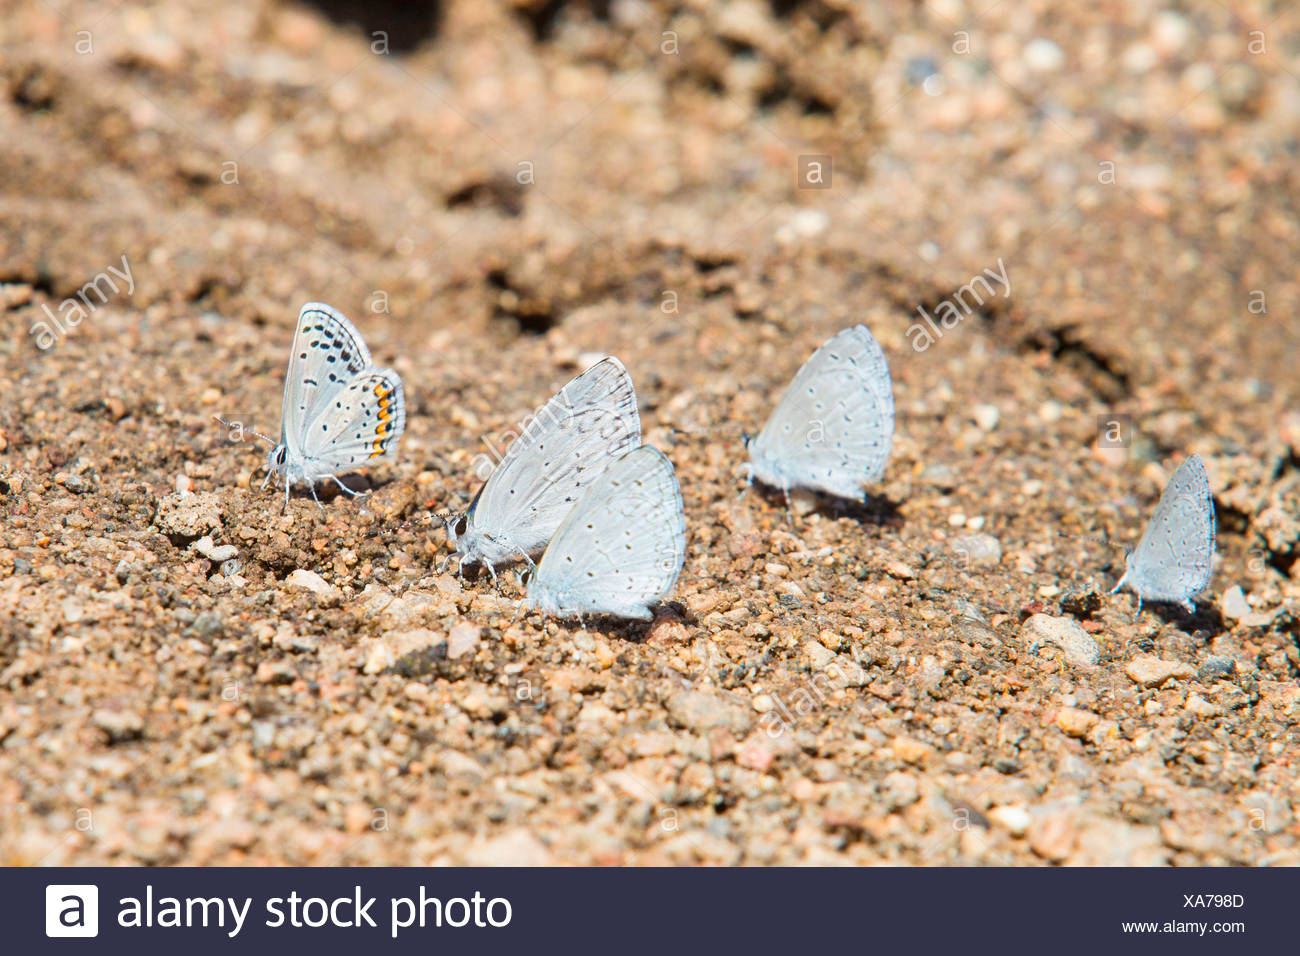 Holly Blue, Holly-Blue (Celastrina argiolus echo, Celestrina argiolus echo, Cyaniris argiolus echo, Lycaena argiolus echo), group with Hemiargus isola alce sucking off mineral salts , USA, Arizona, Verde River - Stock Image